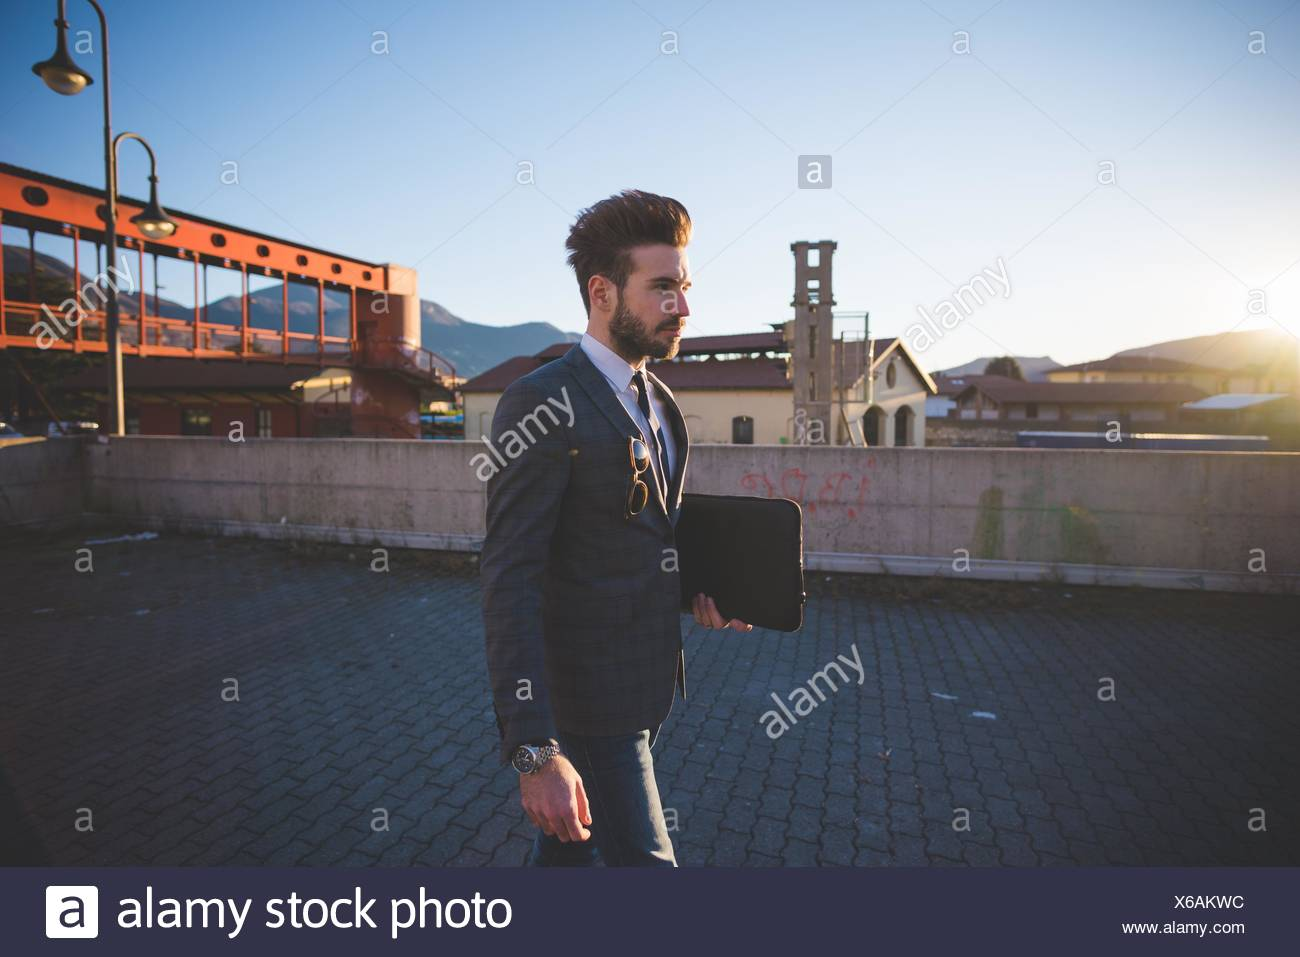 Young businessman carrying briefcase in urban area - Stock Image